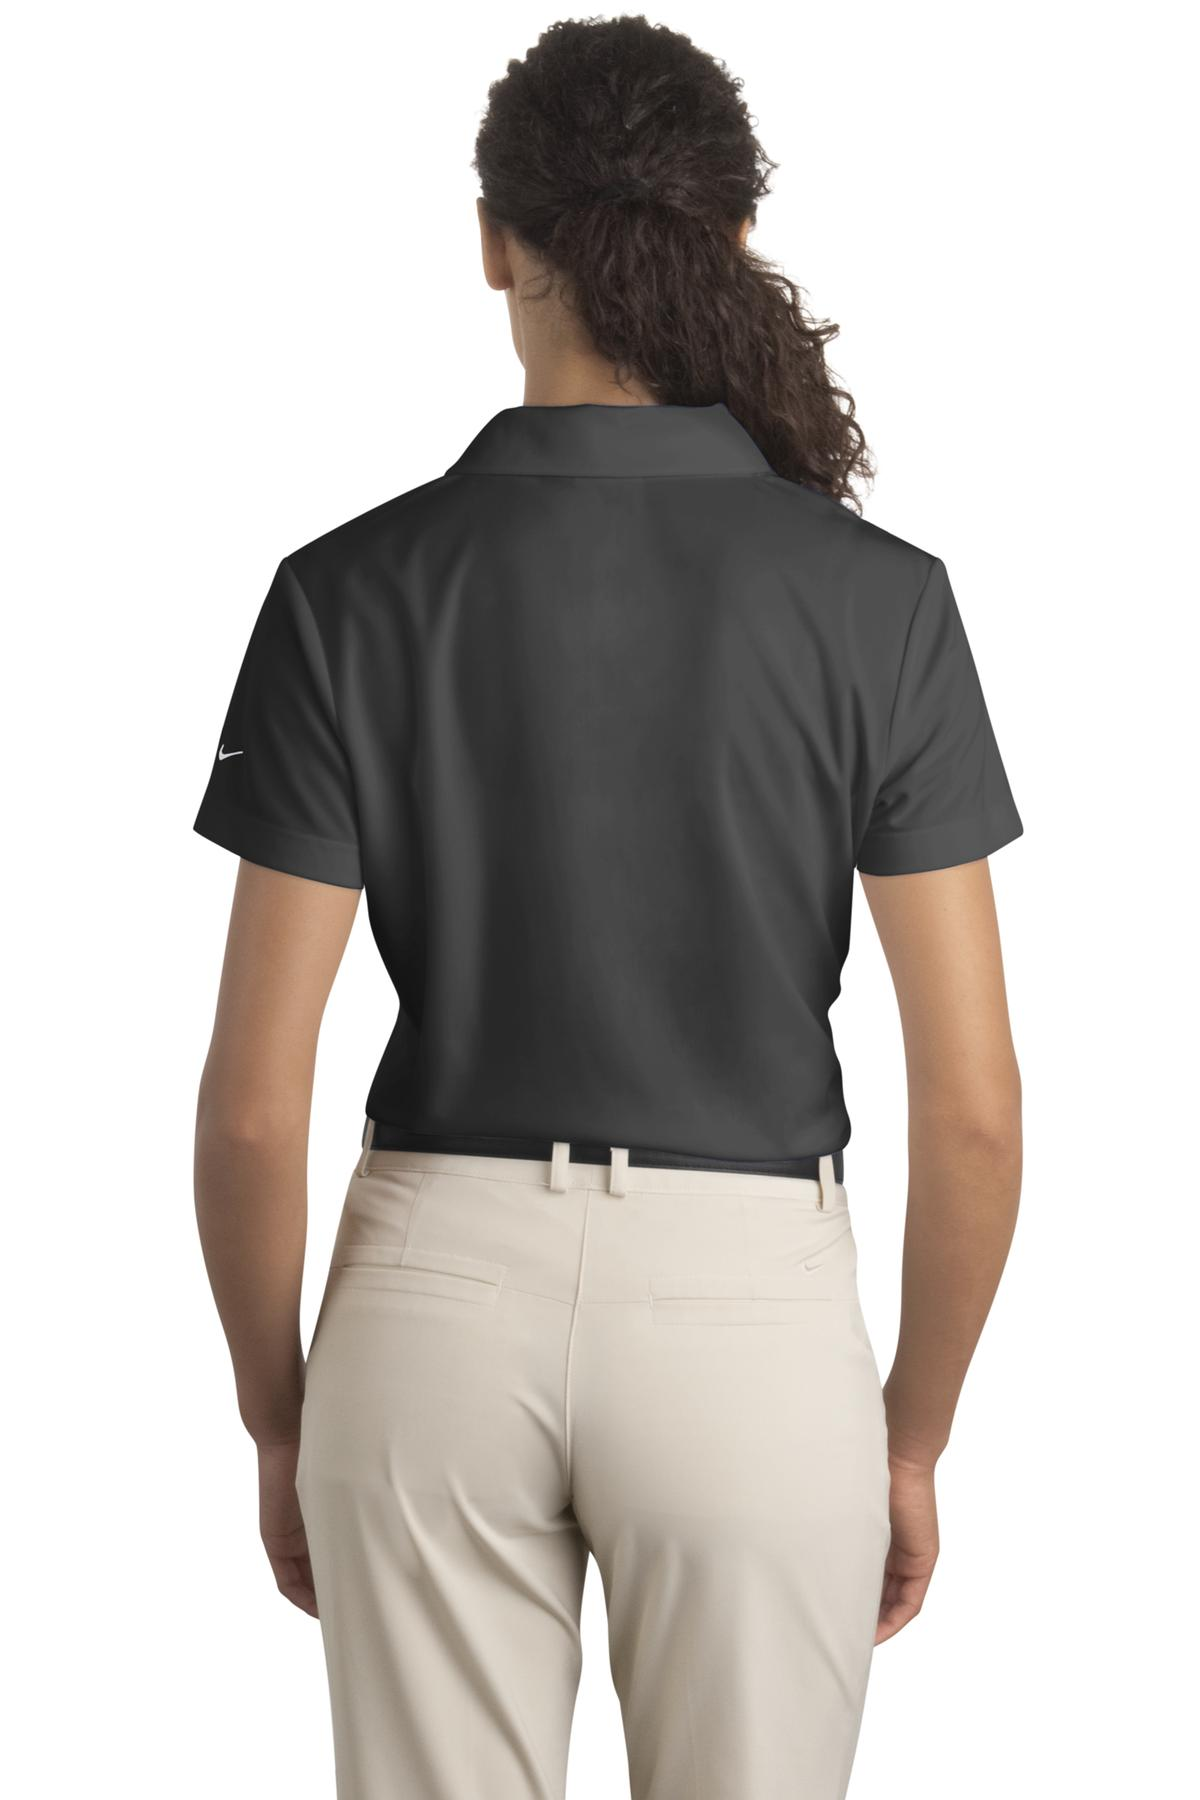 Nike Golf - Ladies Dri-FIT Micro Pique Polo - RCL4067